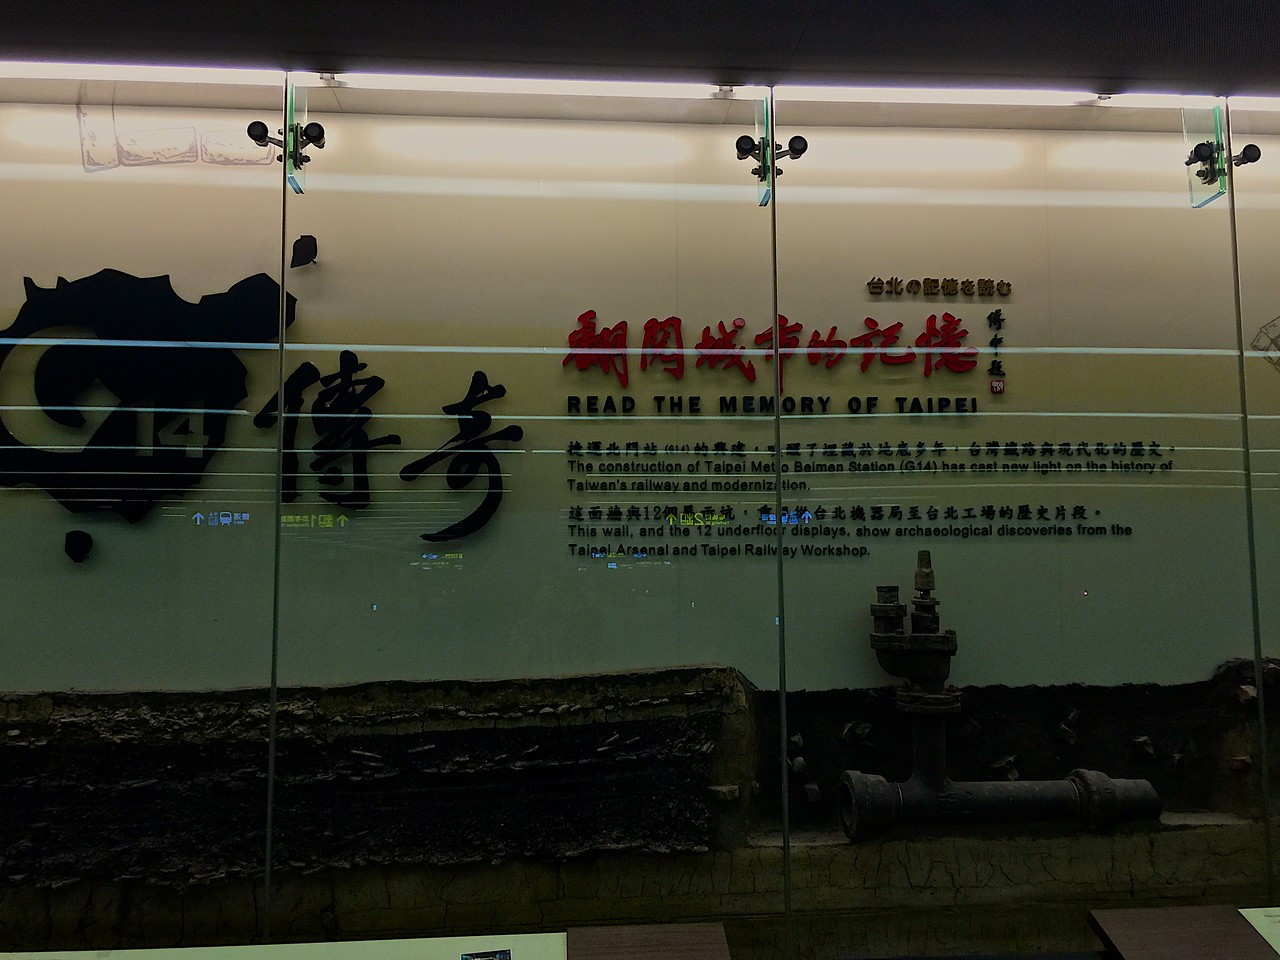 ..next bits of art and history.  In the Beiman station, there are artifacts underneath the station that are from the Qing Dynasty.